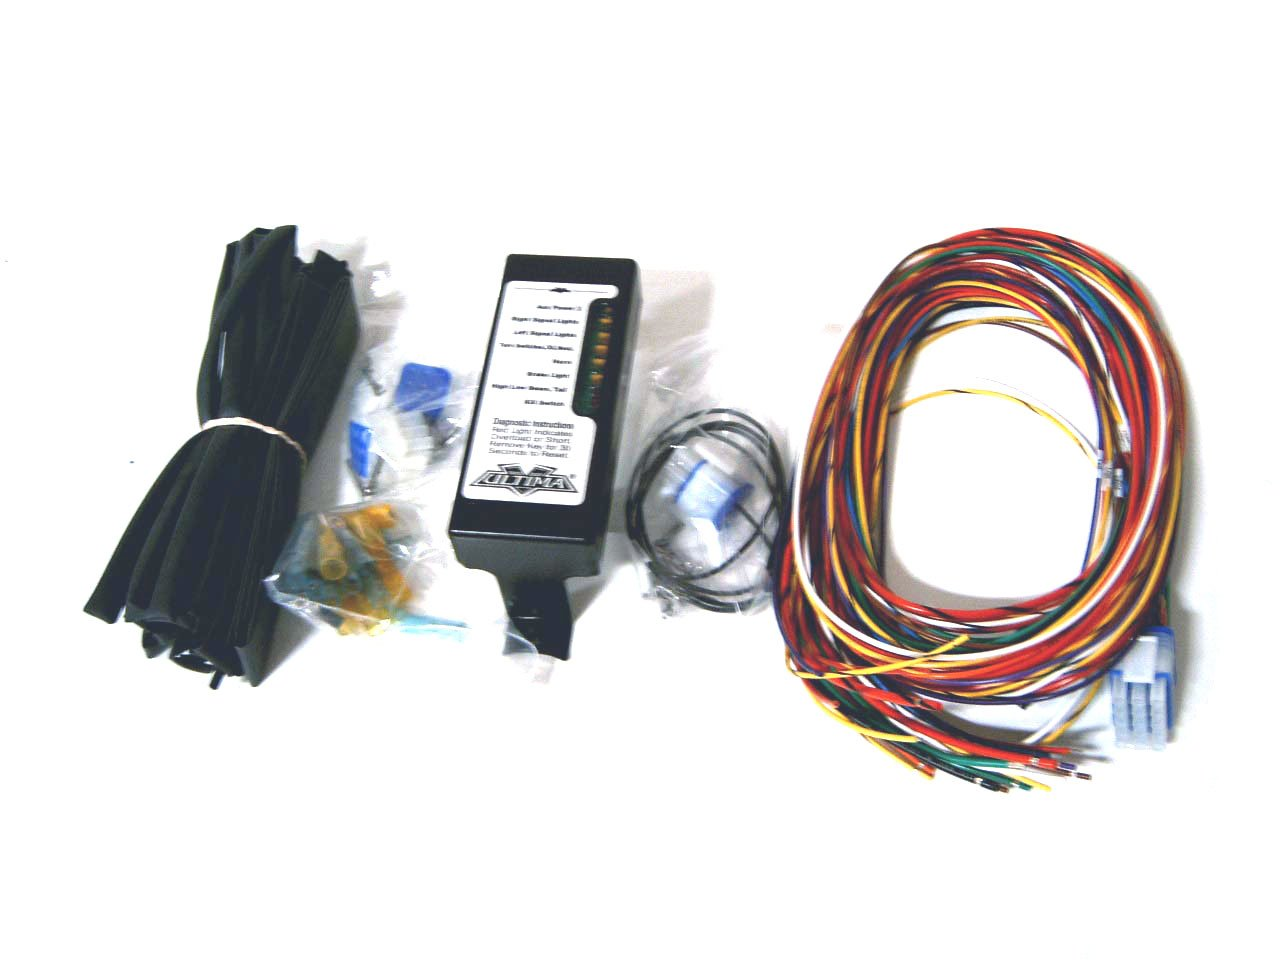 61DV2Bq5%2BHL._SL1280_ amazon com ultima complete wiring harness kit for harley davidson  at mifinder.co